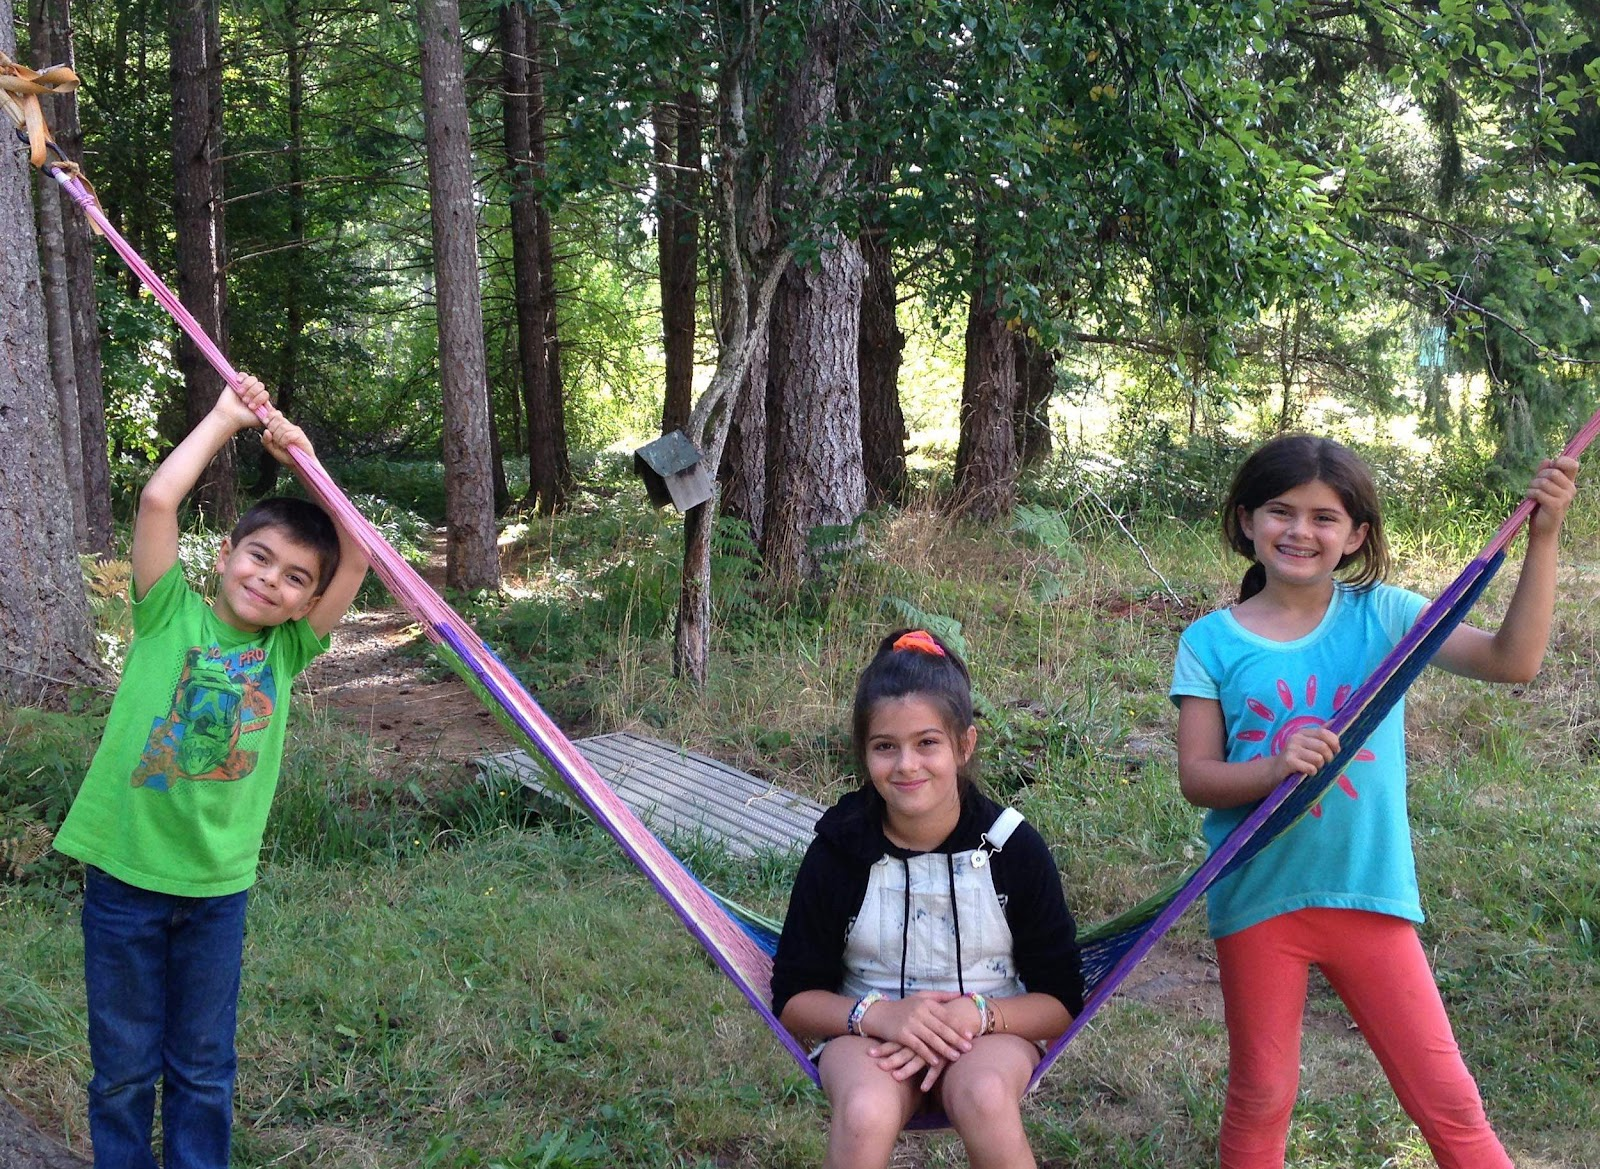 From left to right: Dersim, 7, Sharvahn, 11, Rojevahn, 9, relax in British Columbia.